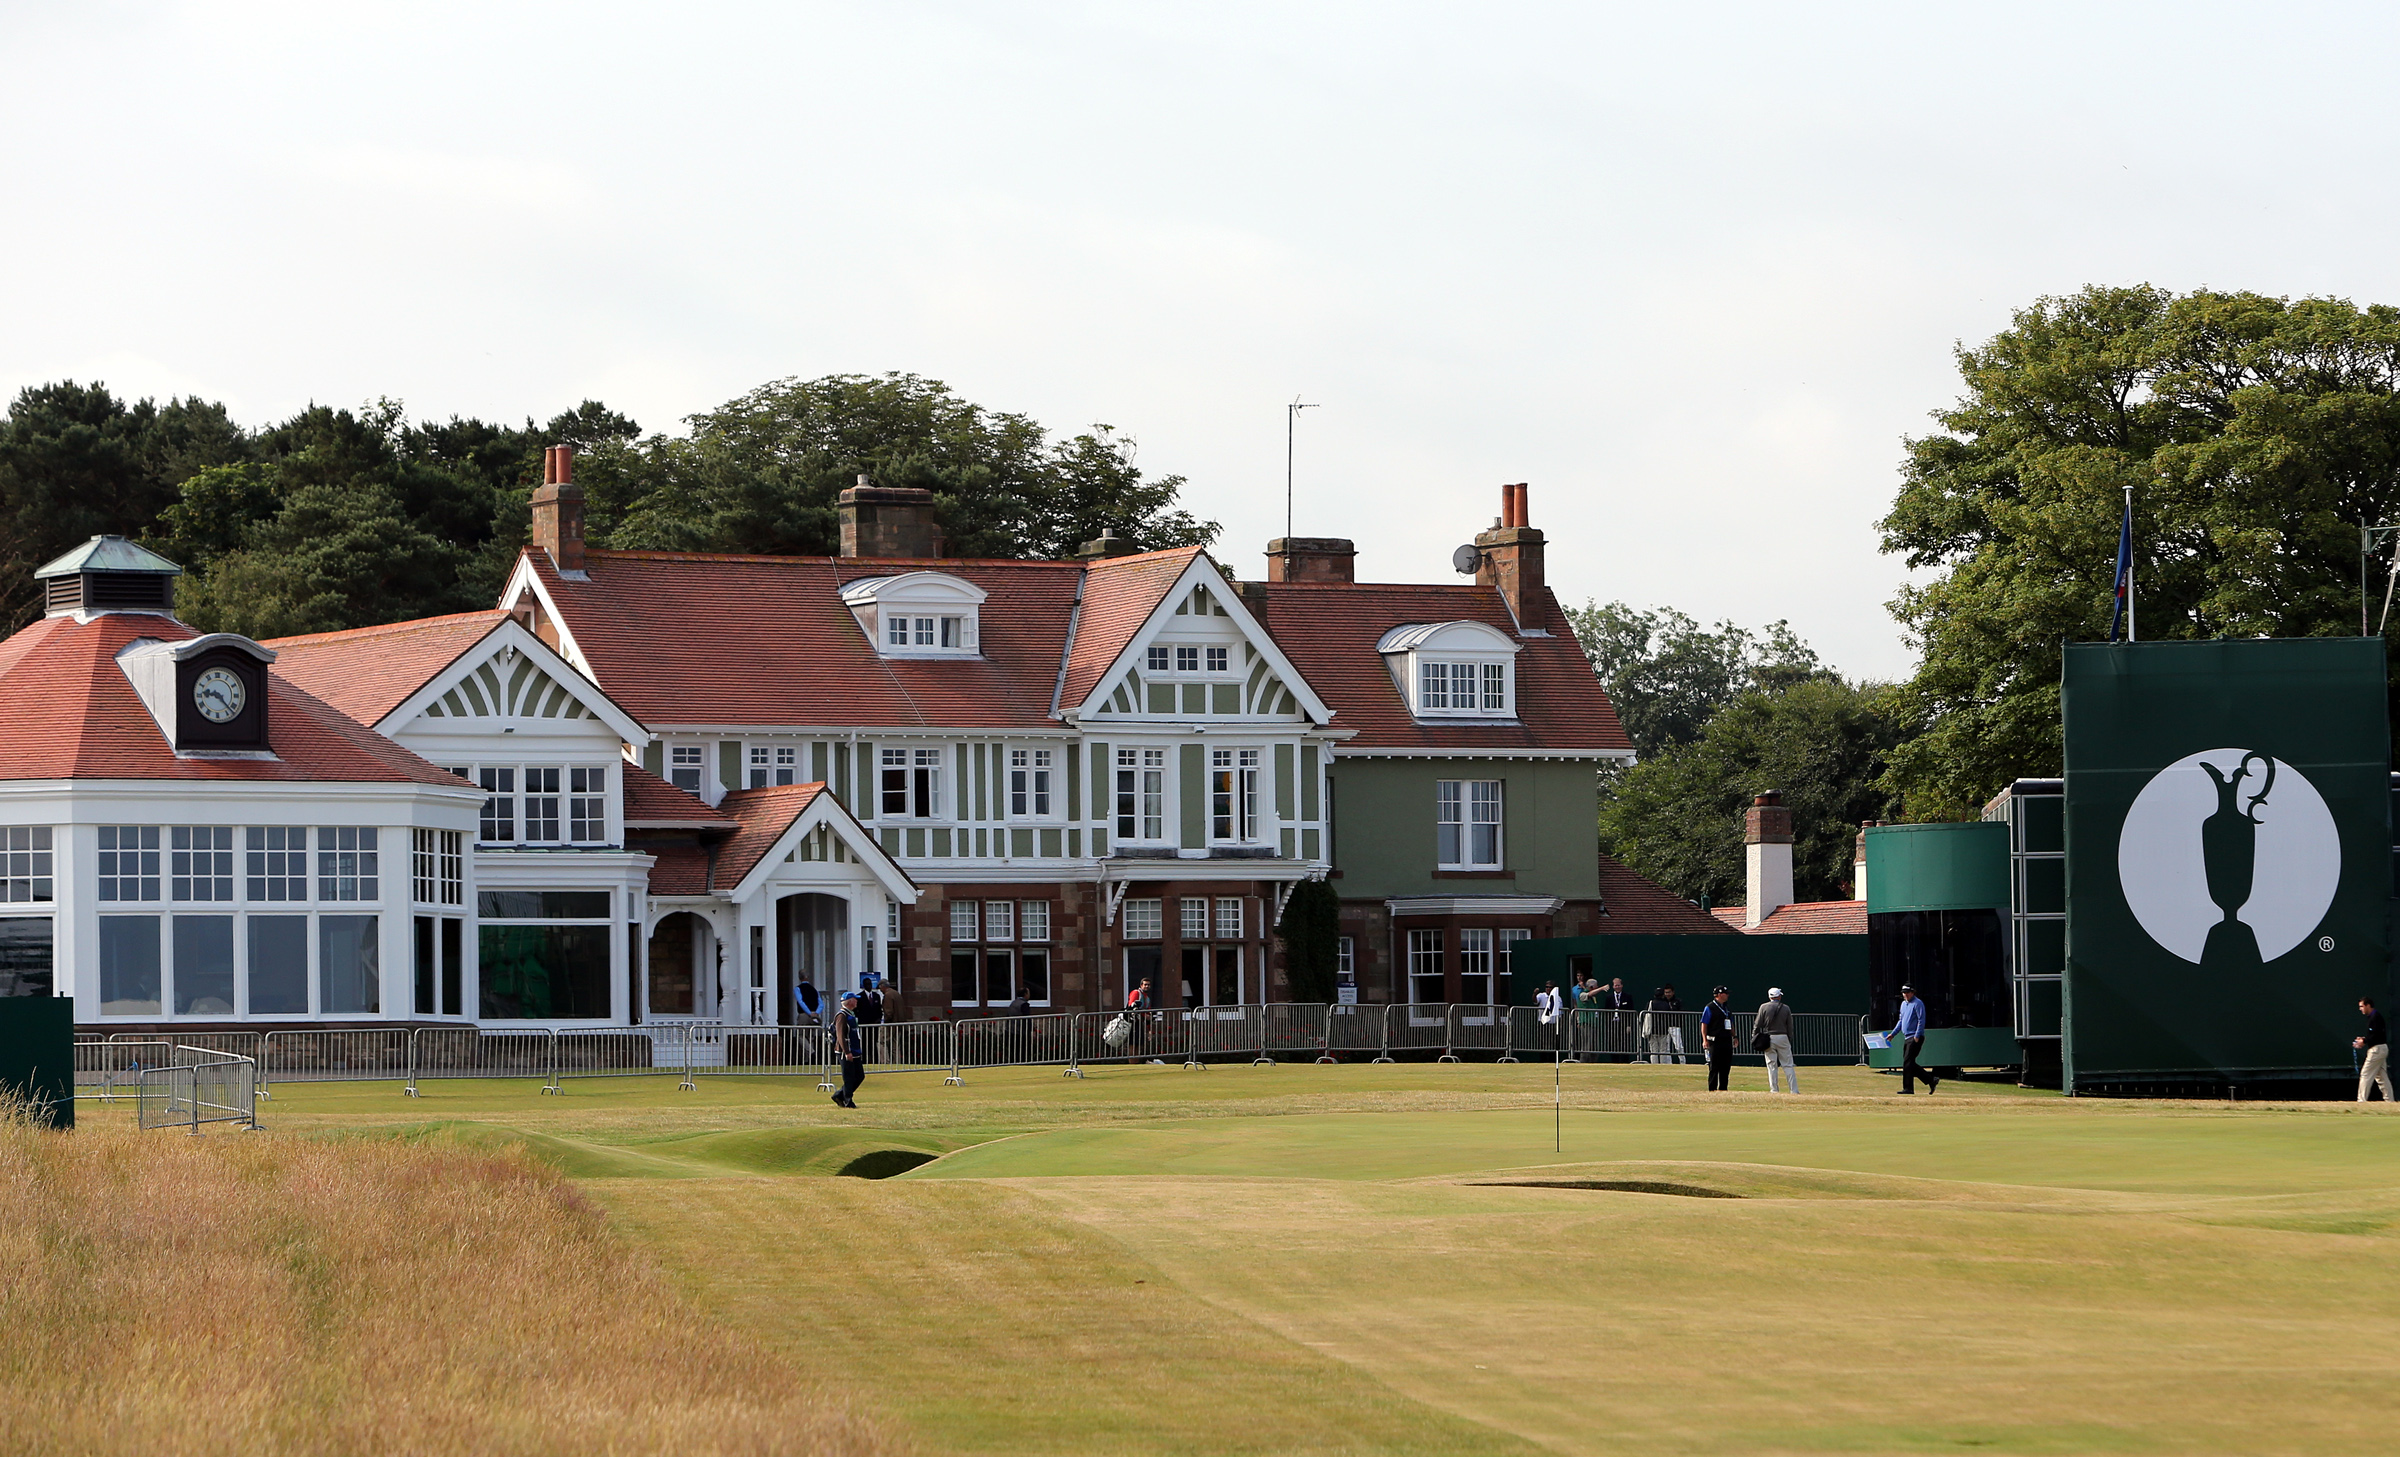 FILE - This is a Sunday, July 14, 2013 file photo of the clubhouse at Muirfield golf course in Muirfield. Muirfield, one of the golf clubs that hosts the British Open, has voted against allowing women to become members. The decision was announced Thursday